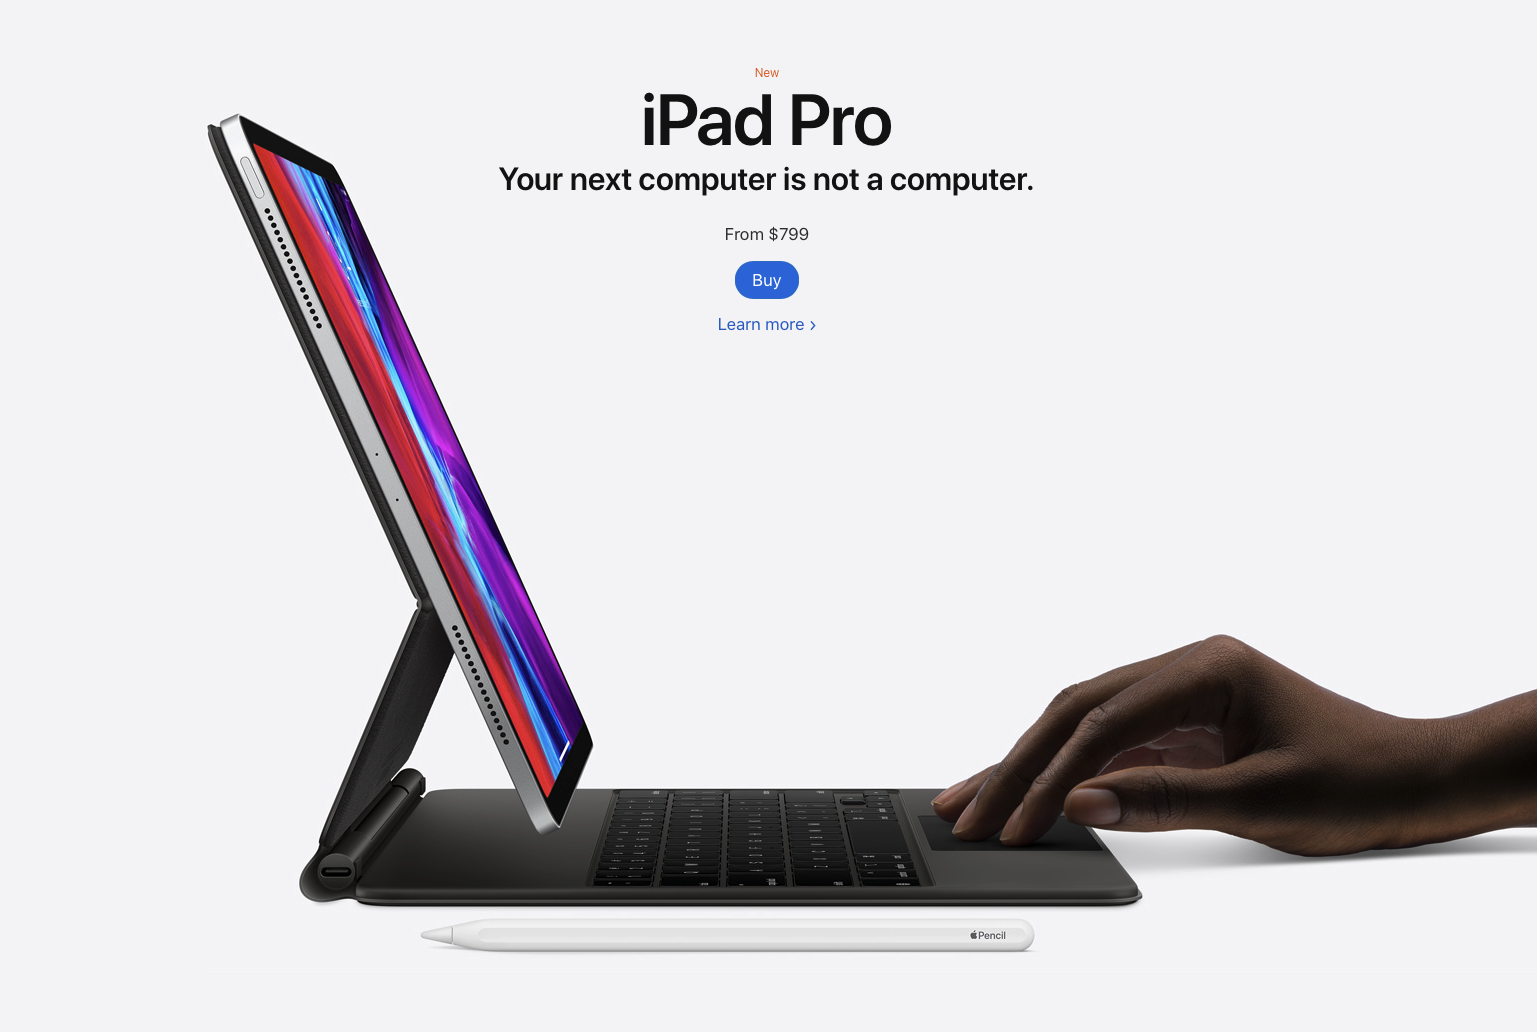 apple value proposition for iPad